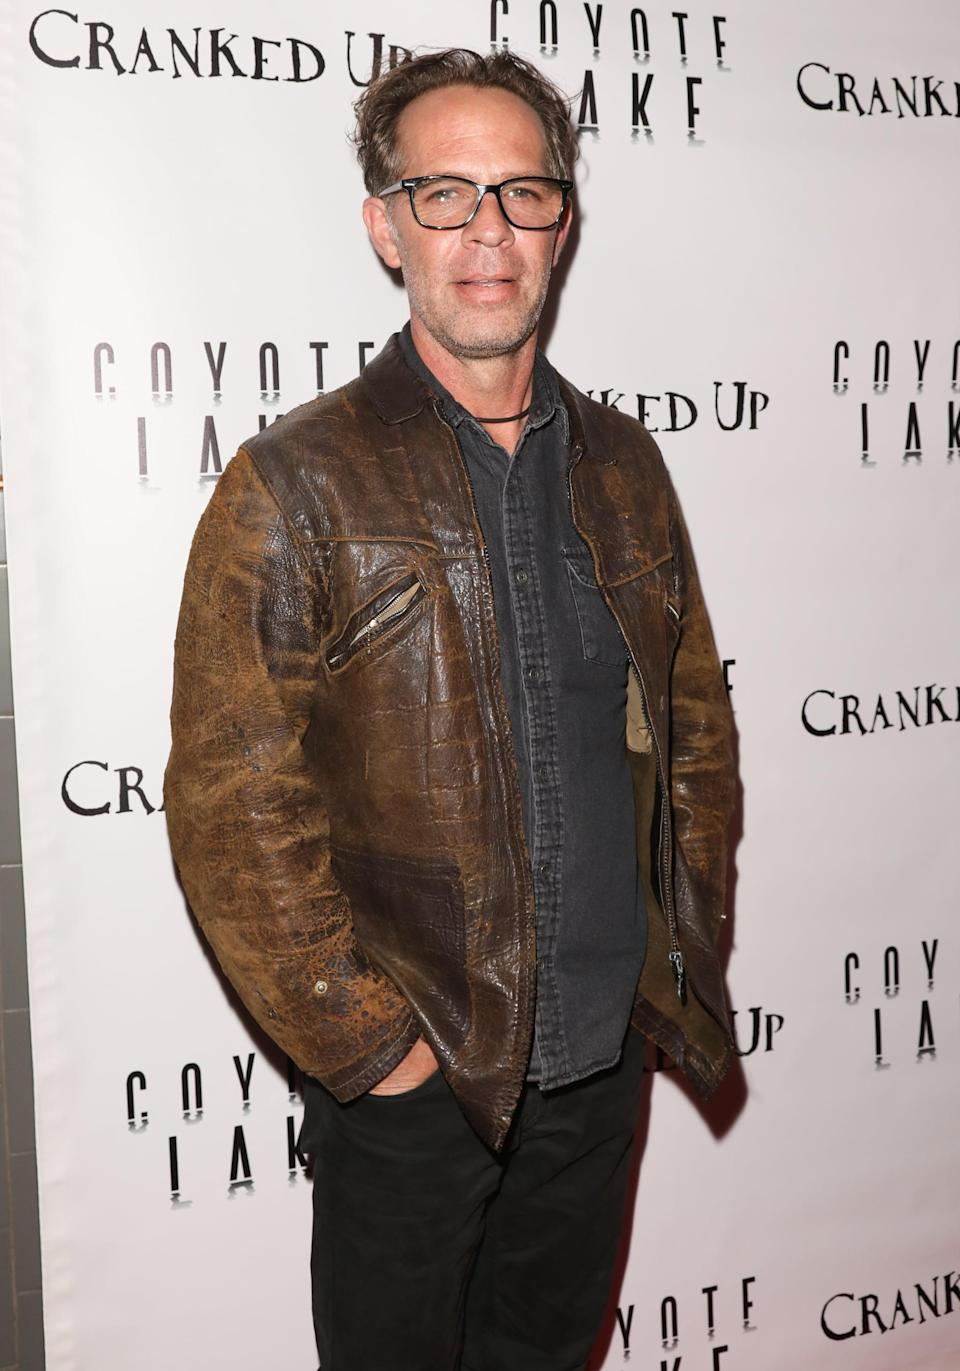 <p>Sandilands is slated to play General Abbot on <strong>Sweet Tooth</strong>, and it's not the first time he's played a mysterious older character in a sci-fi/fantasy show. He appeared on <strong>The 100</strong> as Titus and later joined <strong>The Flash</strong> as supervillain The Thinker.</p>